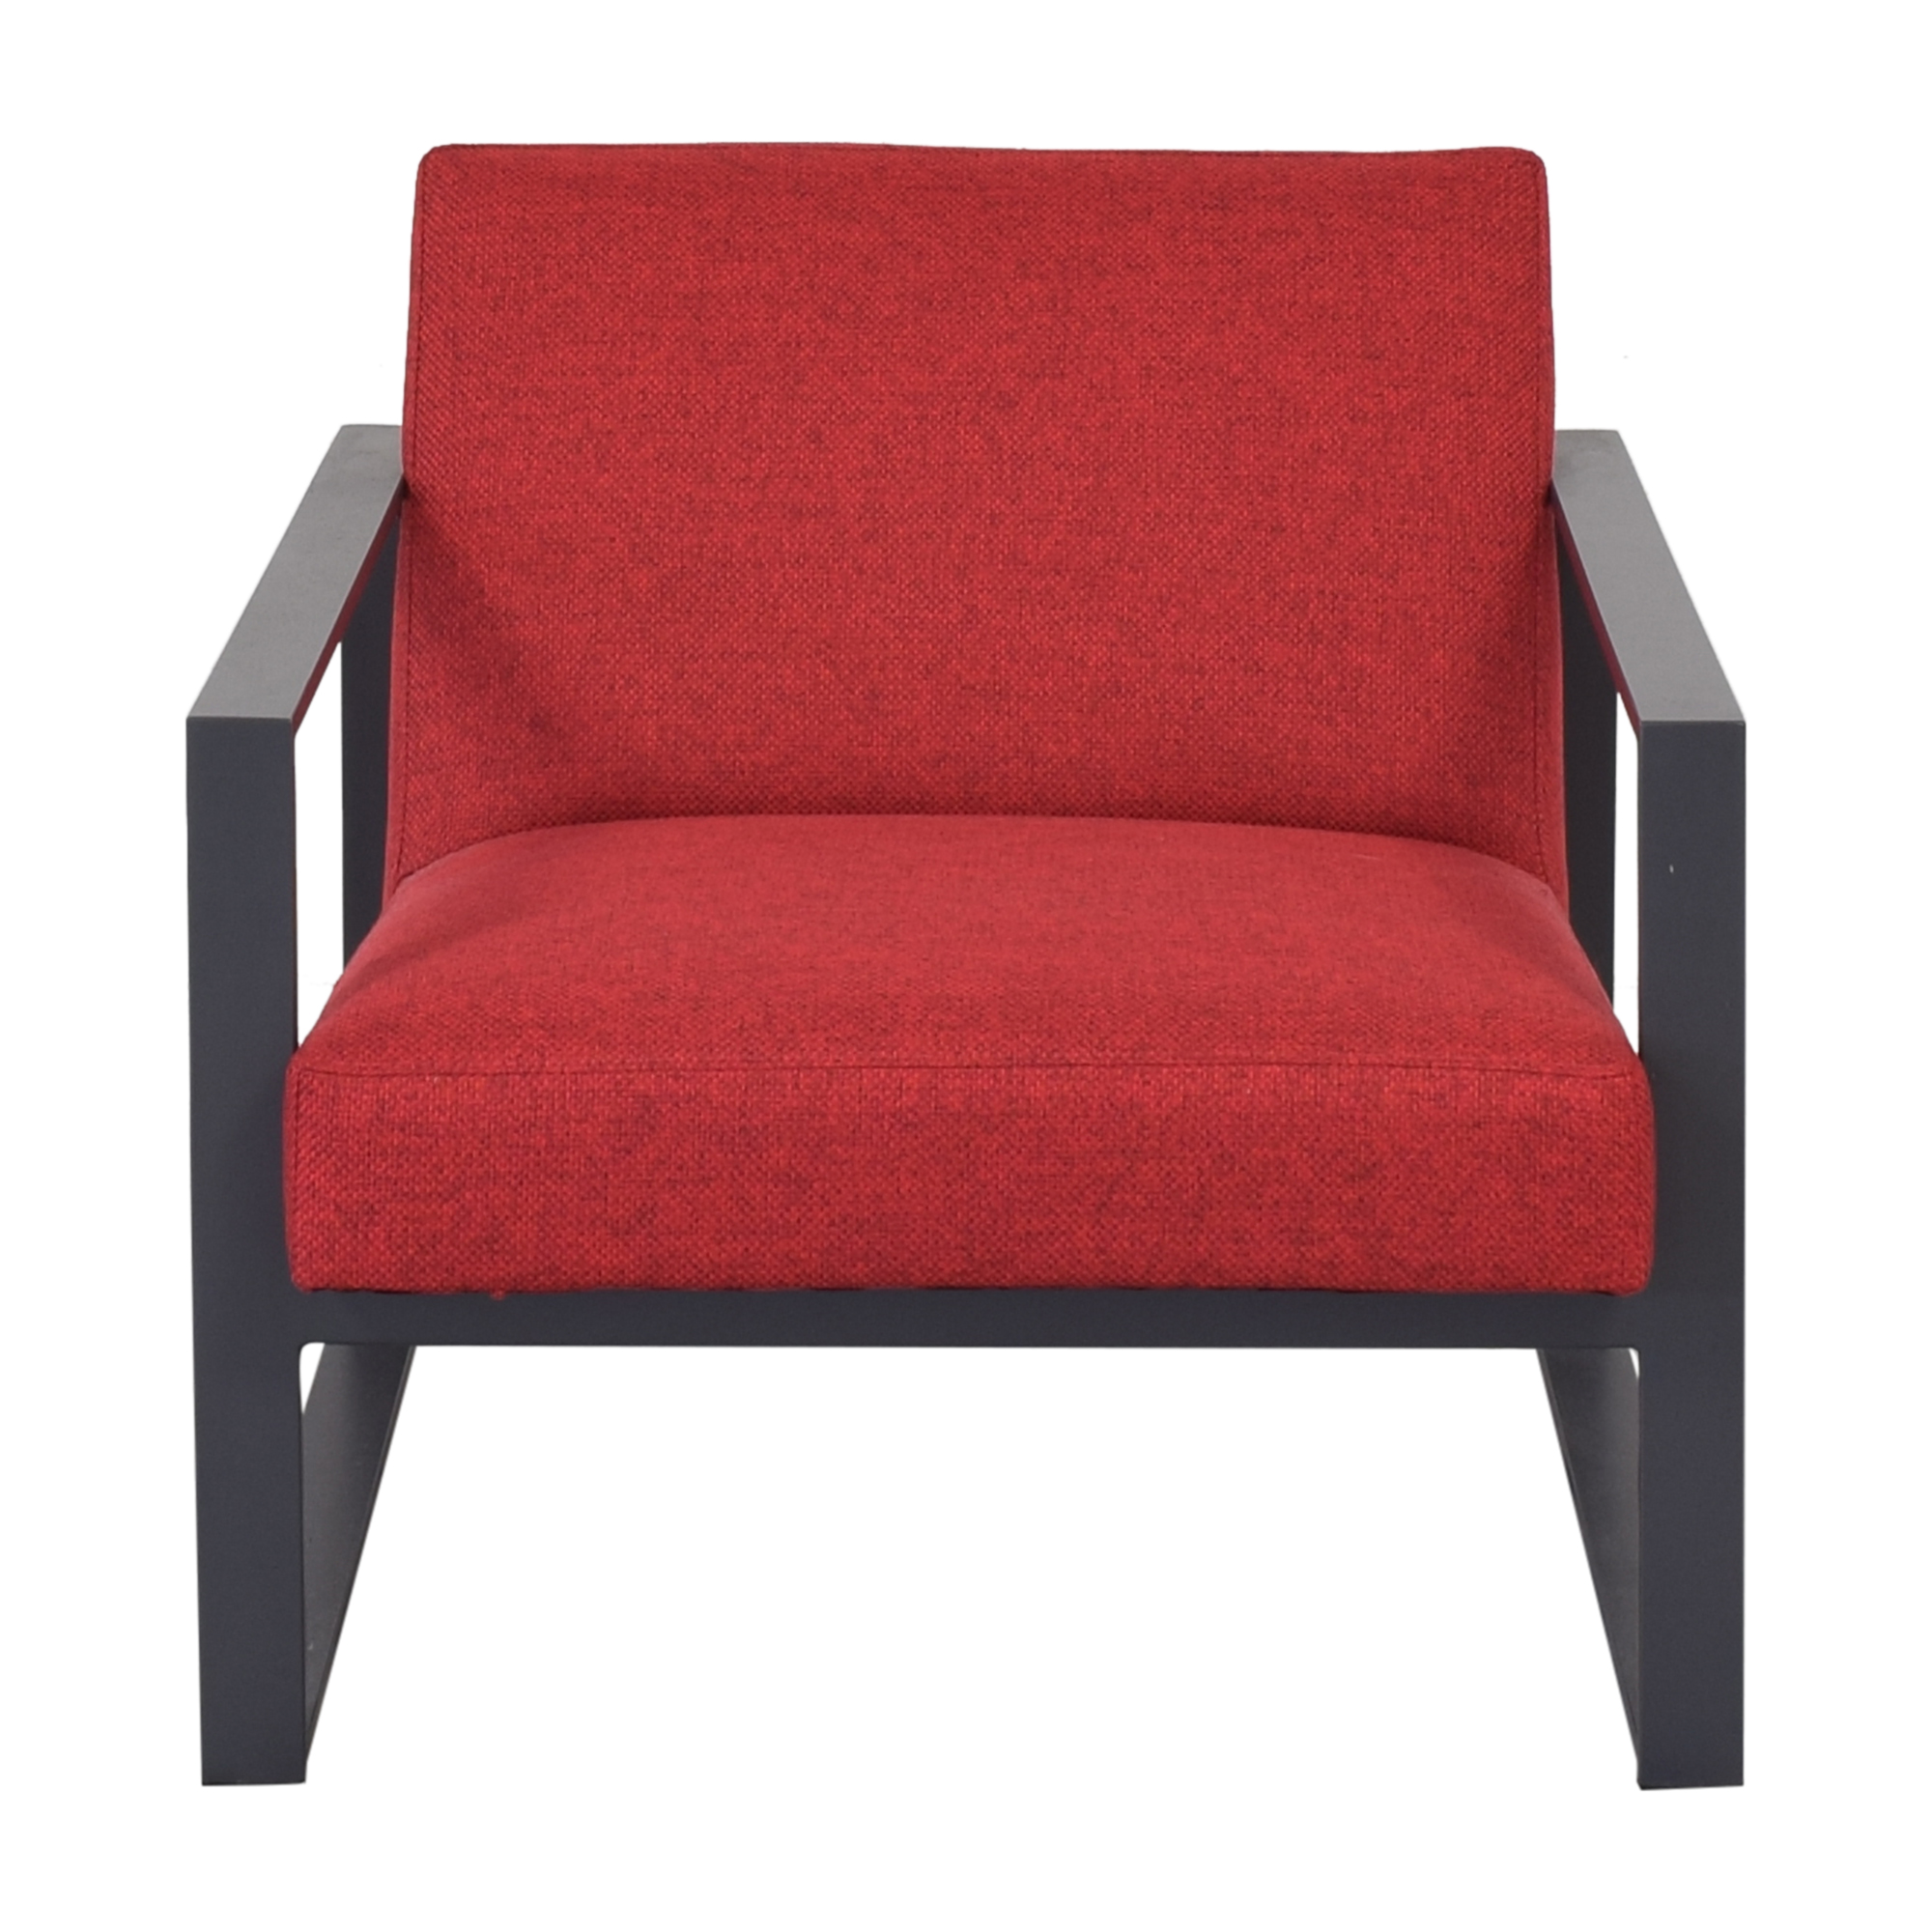 Crate & Barrel Crate & Barrel Specs Chair pa